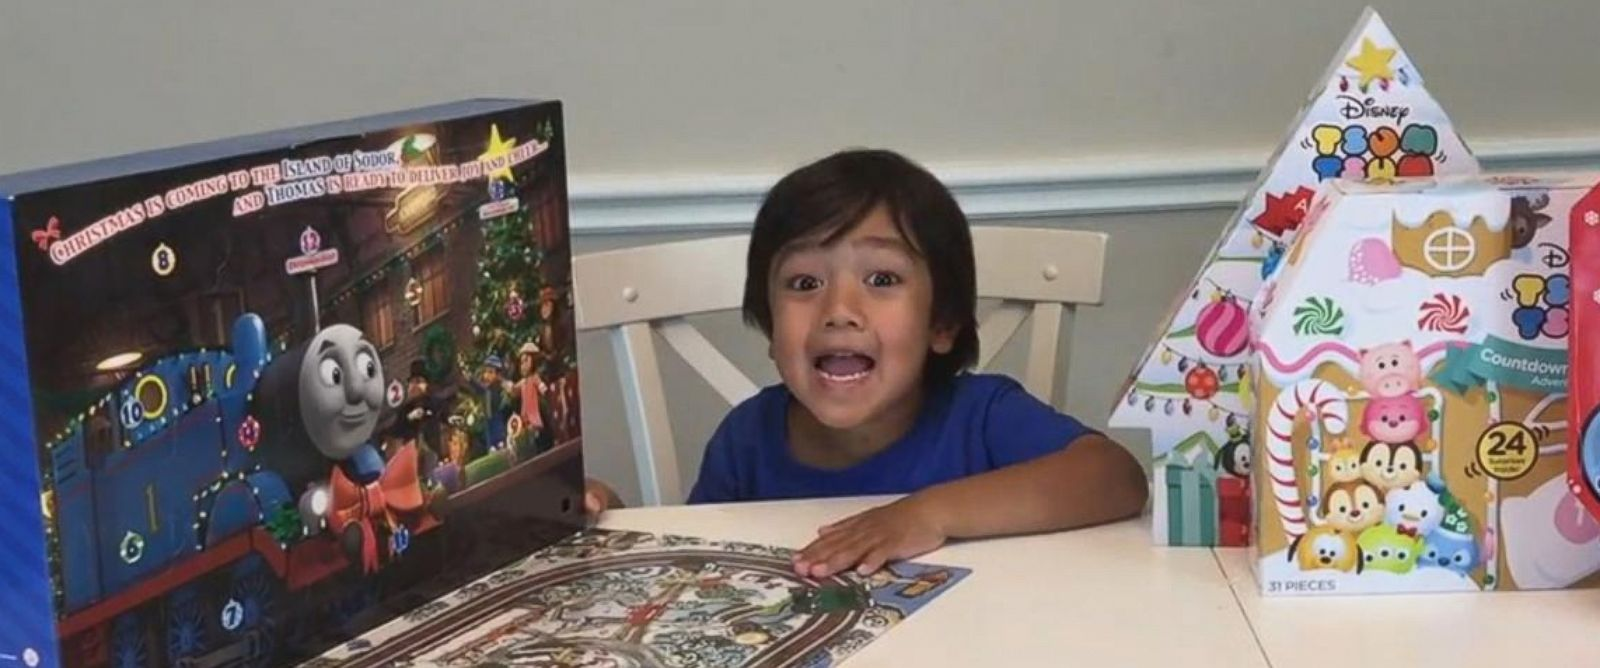 VIDEO: Ryan's Family Review has over 1 million YouTube subscribers and its 6-year-old star earns $11M annually reviewing new toys, according to Forbes.